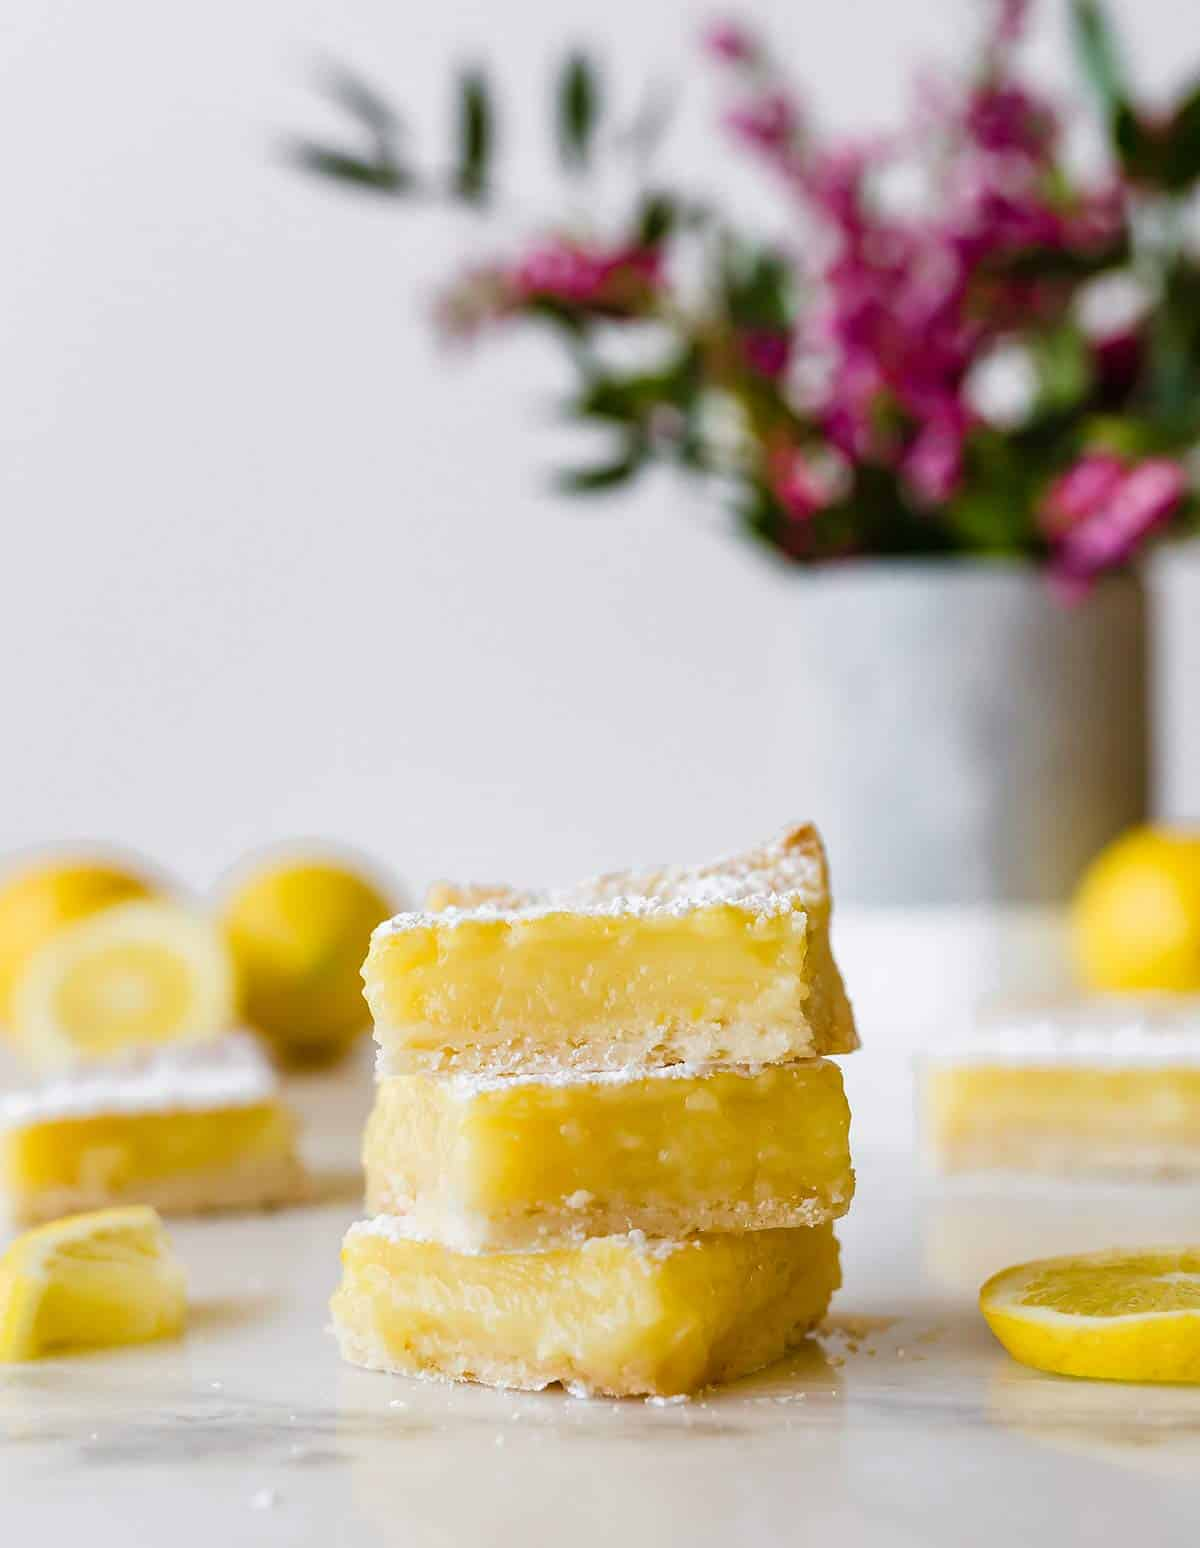 A stack of three lemon bars with cut lemons and a vase of flowers in the background.